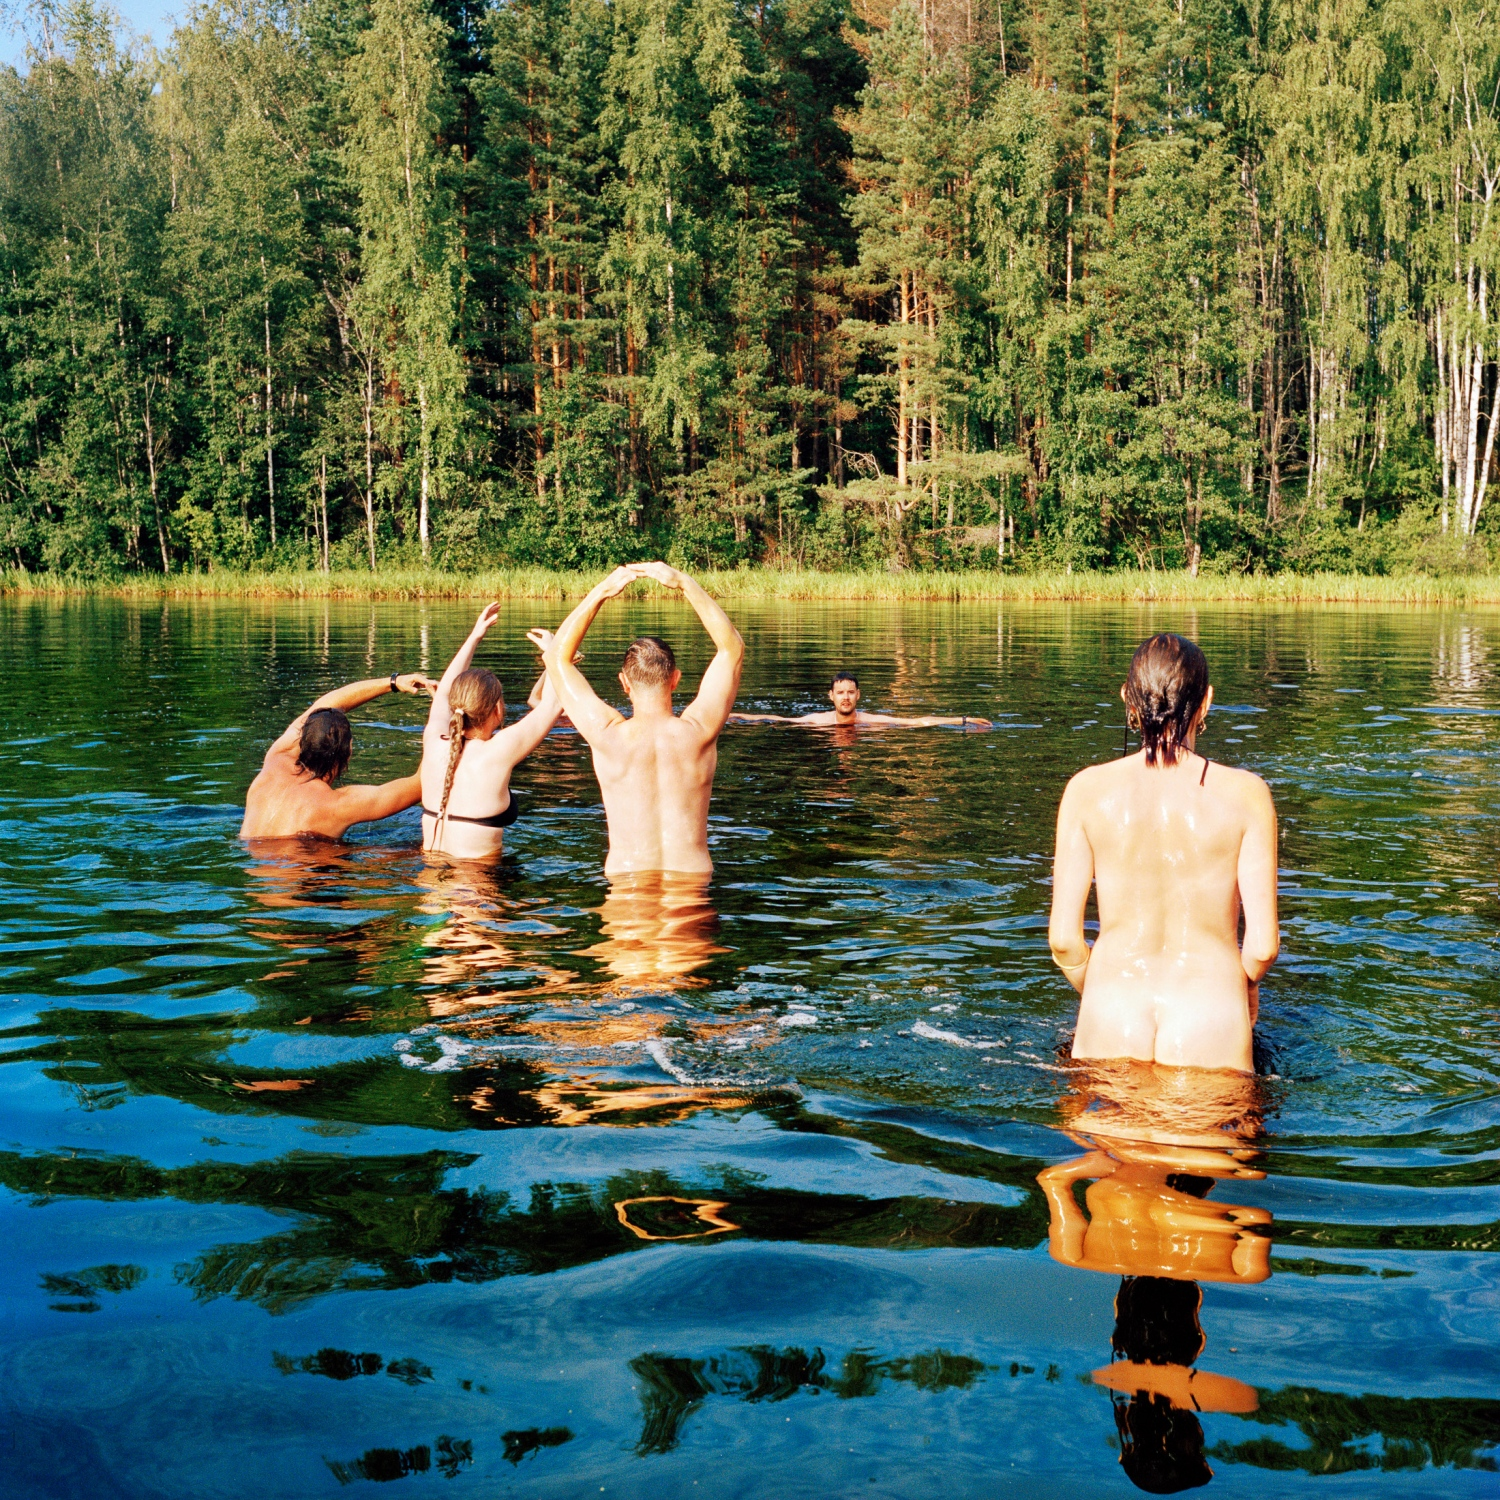 Near Saatse, Estonia, the Russian-Estonian border runs through the middle of this lake, where bathers play a ball game and frolic.